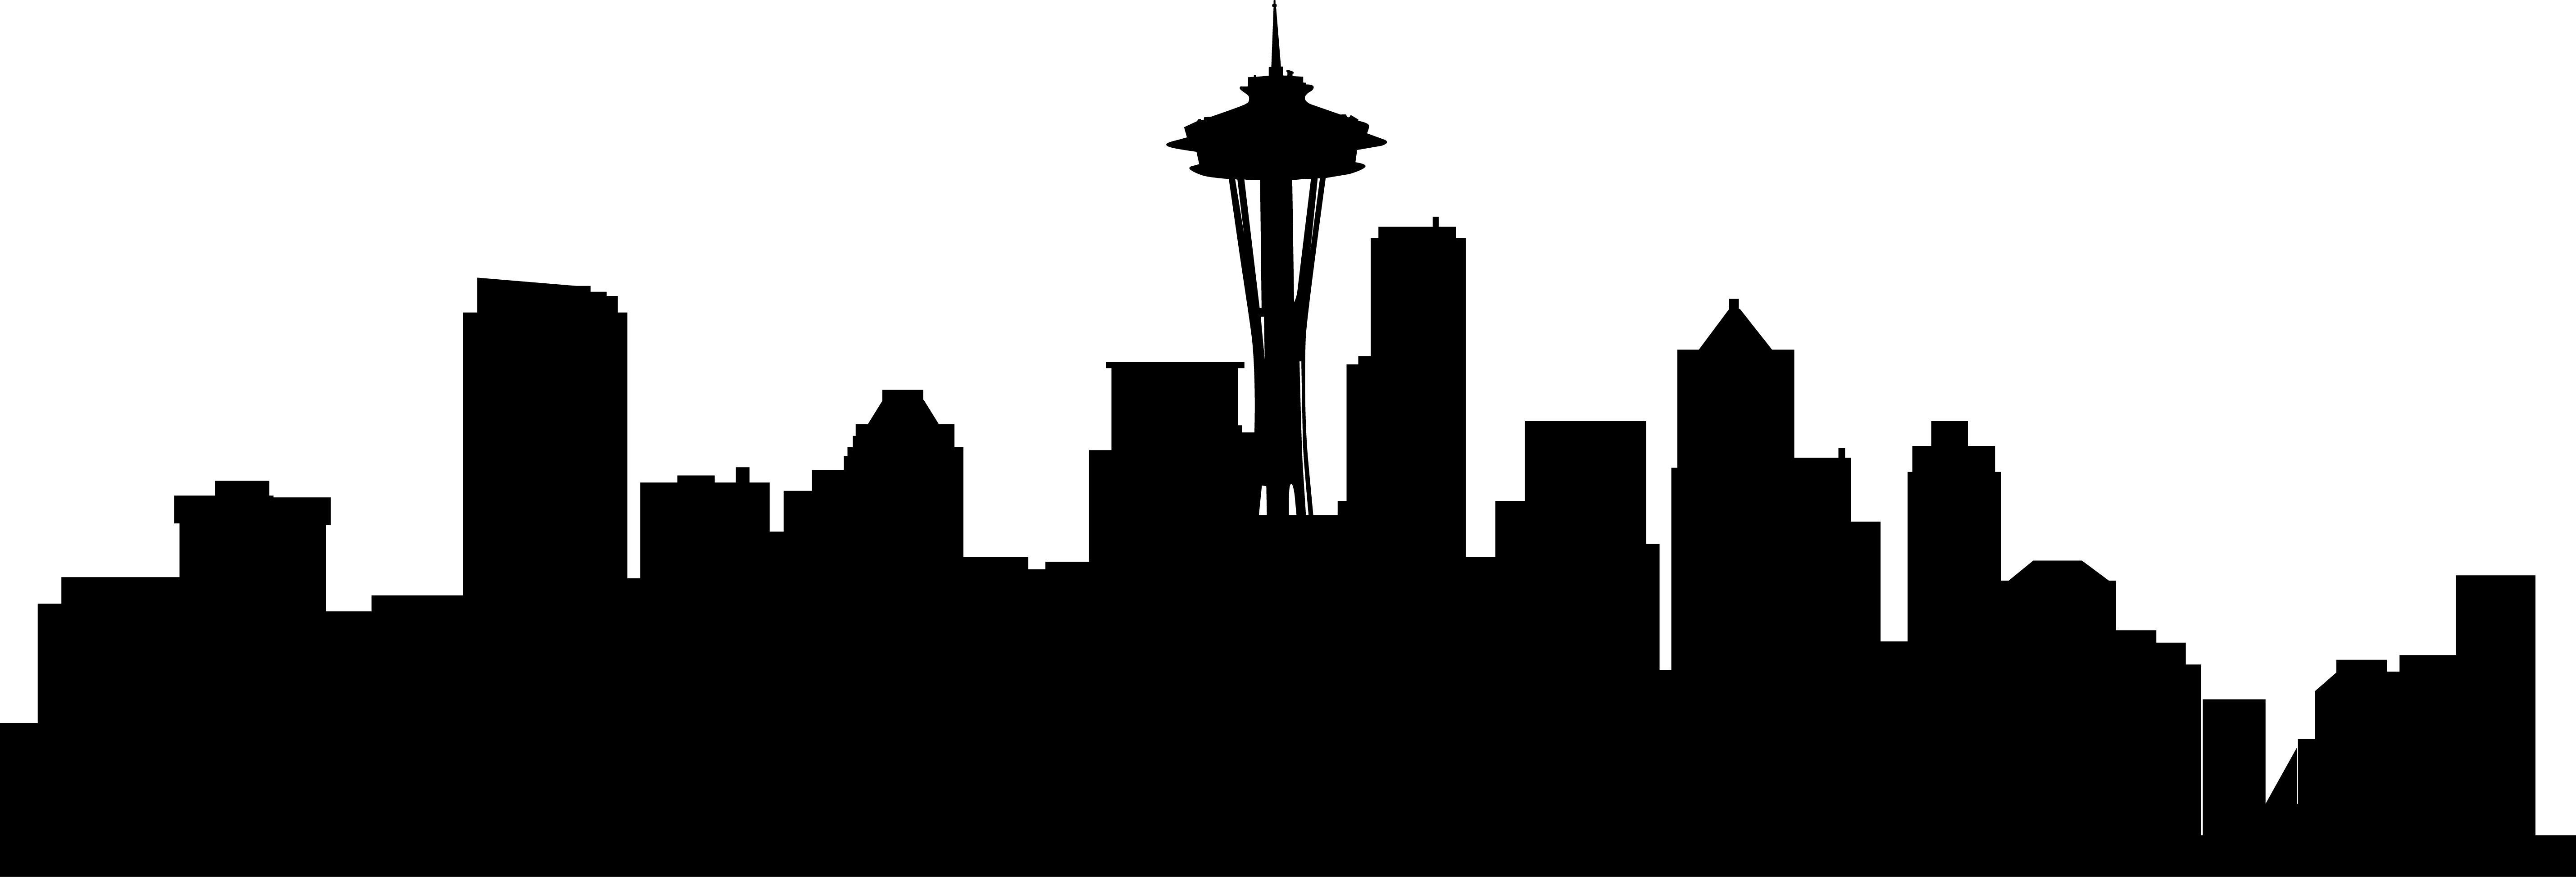 city skyline silhouette vector at getdrawings com free for rh getdrawings com city victoria texas city victoria tx